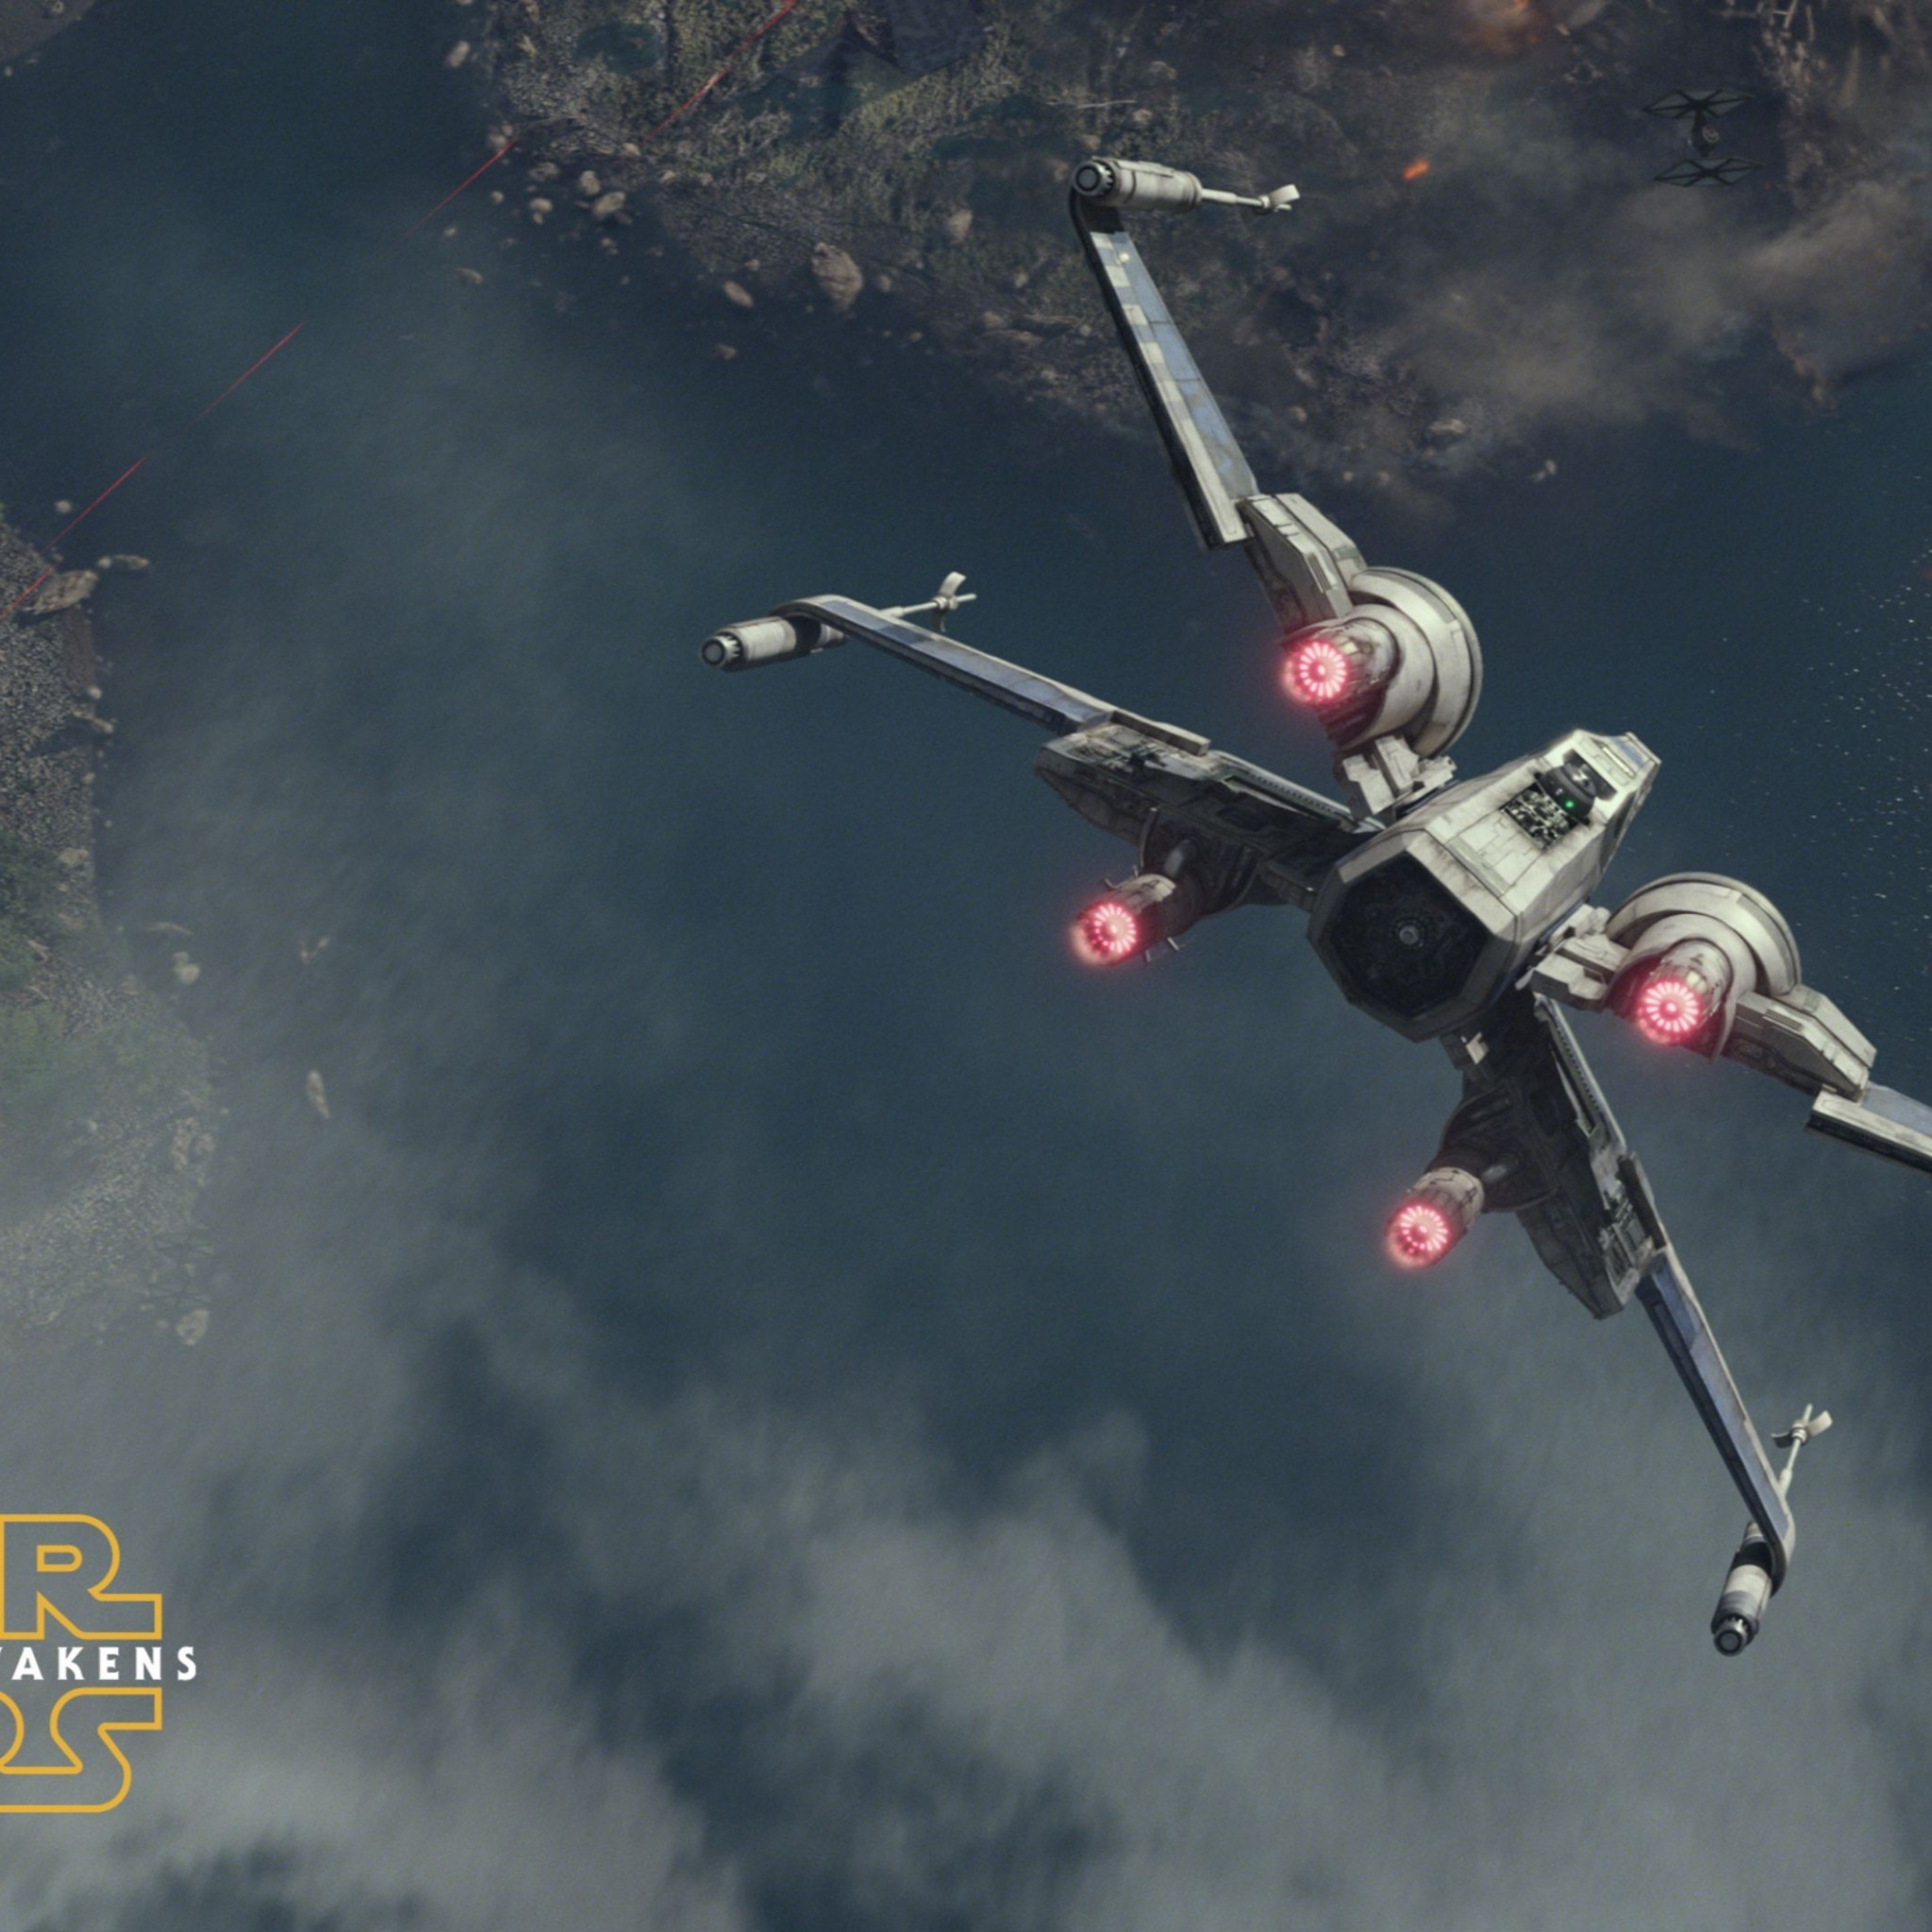 2048x2048 Best X-Wing Fighter Star Wars The Force Awakens 4K Wallpaper | Best Games  Wallpapers | Pinterest | Wibbly wobbly timey wimey and Starwars